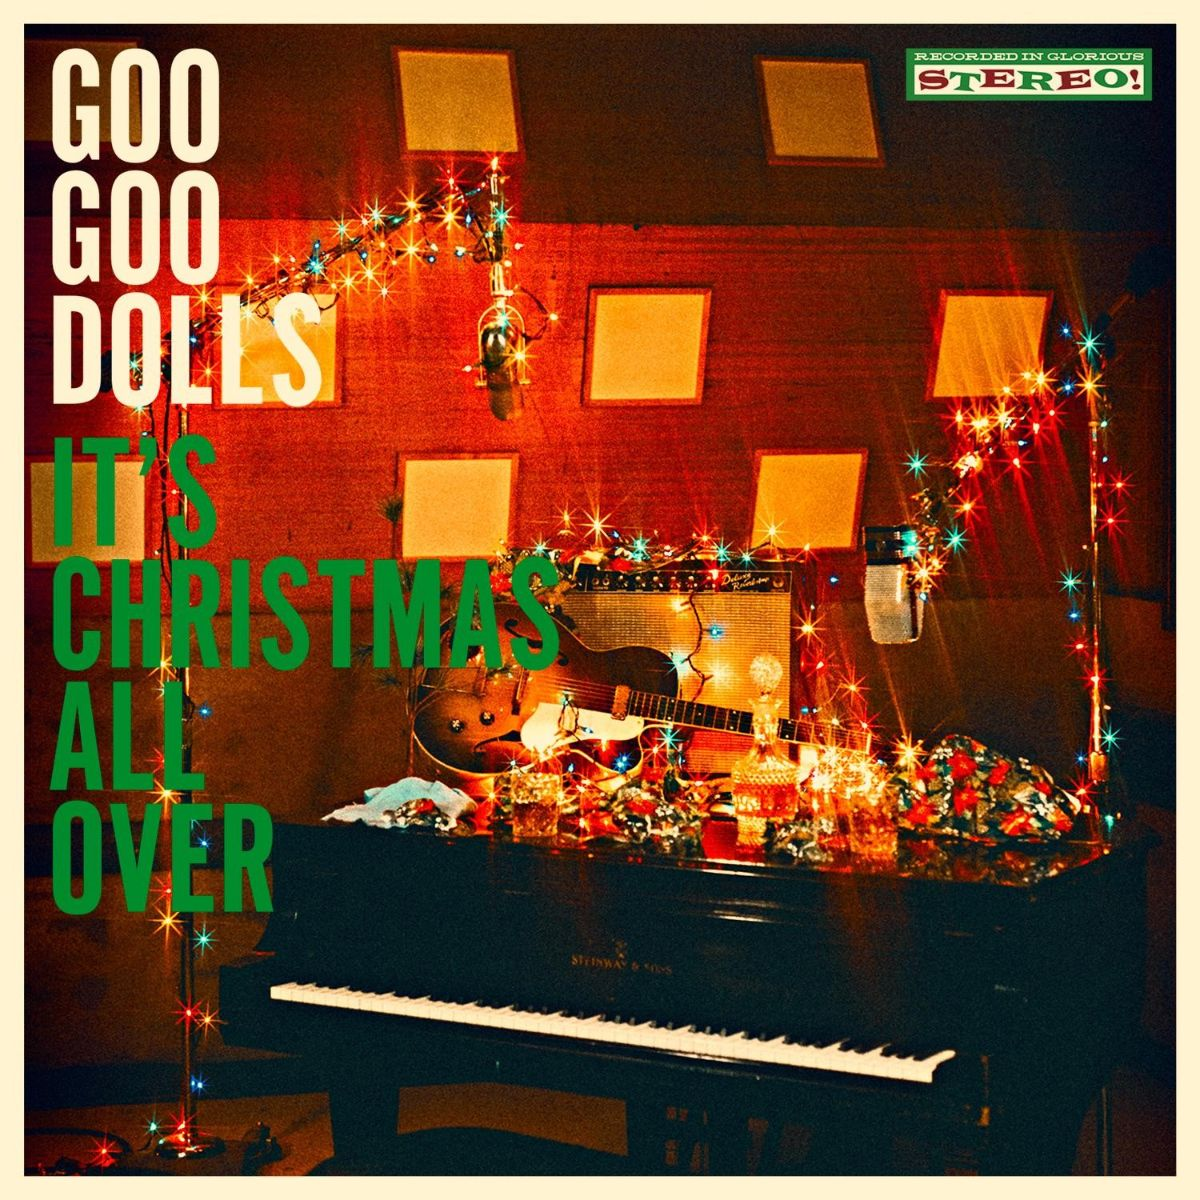 Goo Goo Dolls Announce Their First-Ever Holiday Album 'It's Christmas All Over'